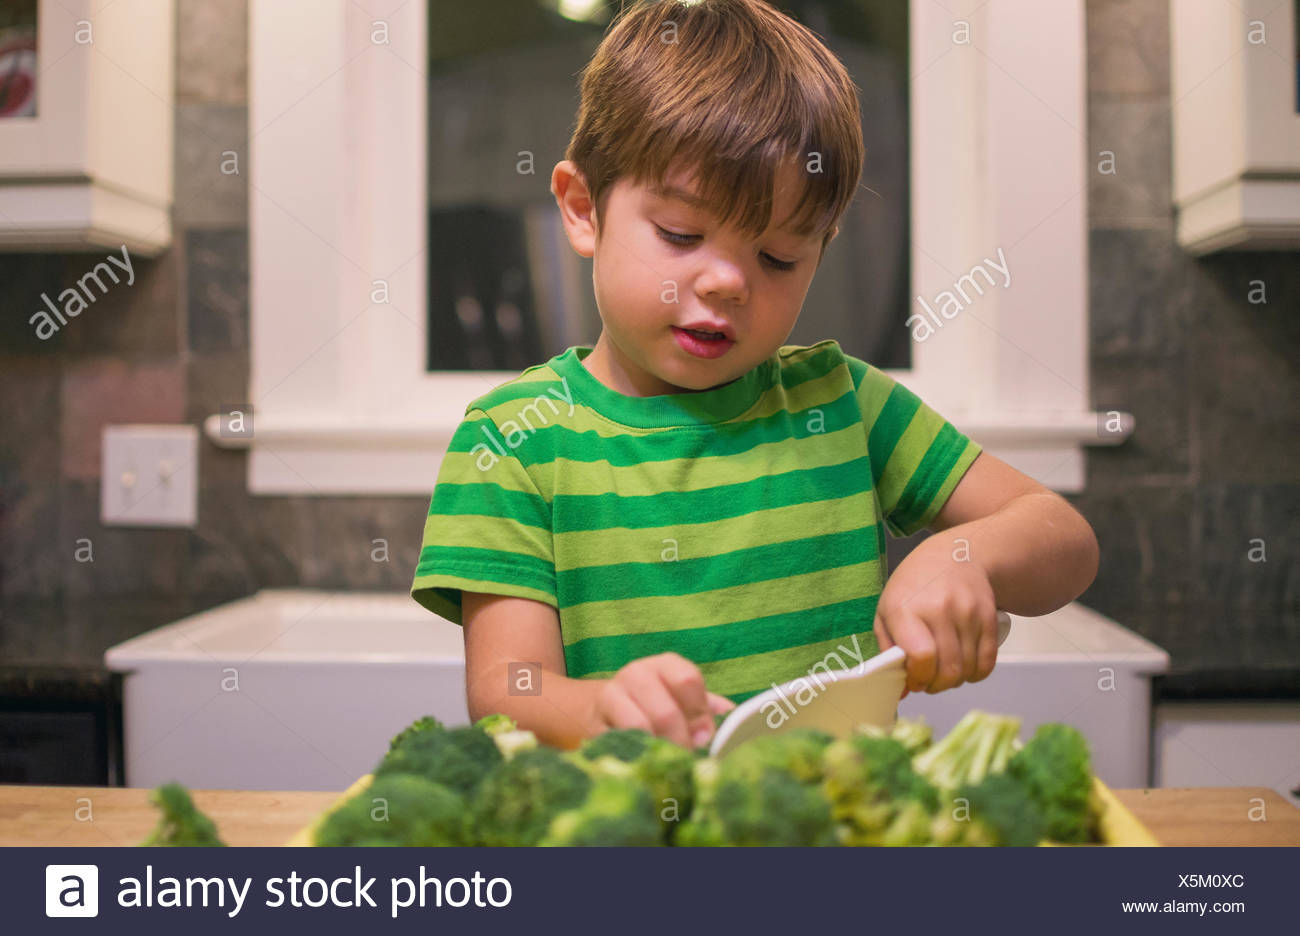 Boy in kitchen chopping broccoli - Stock Image